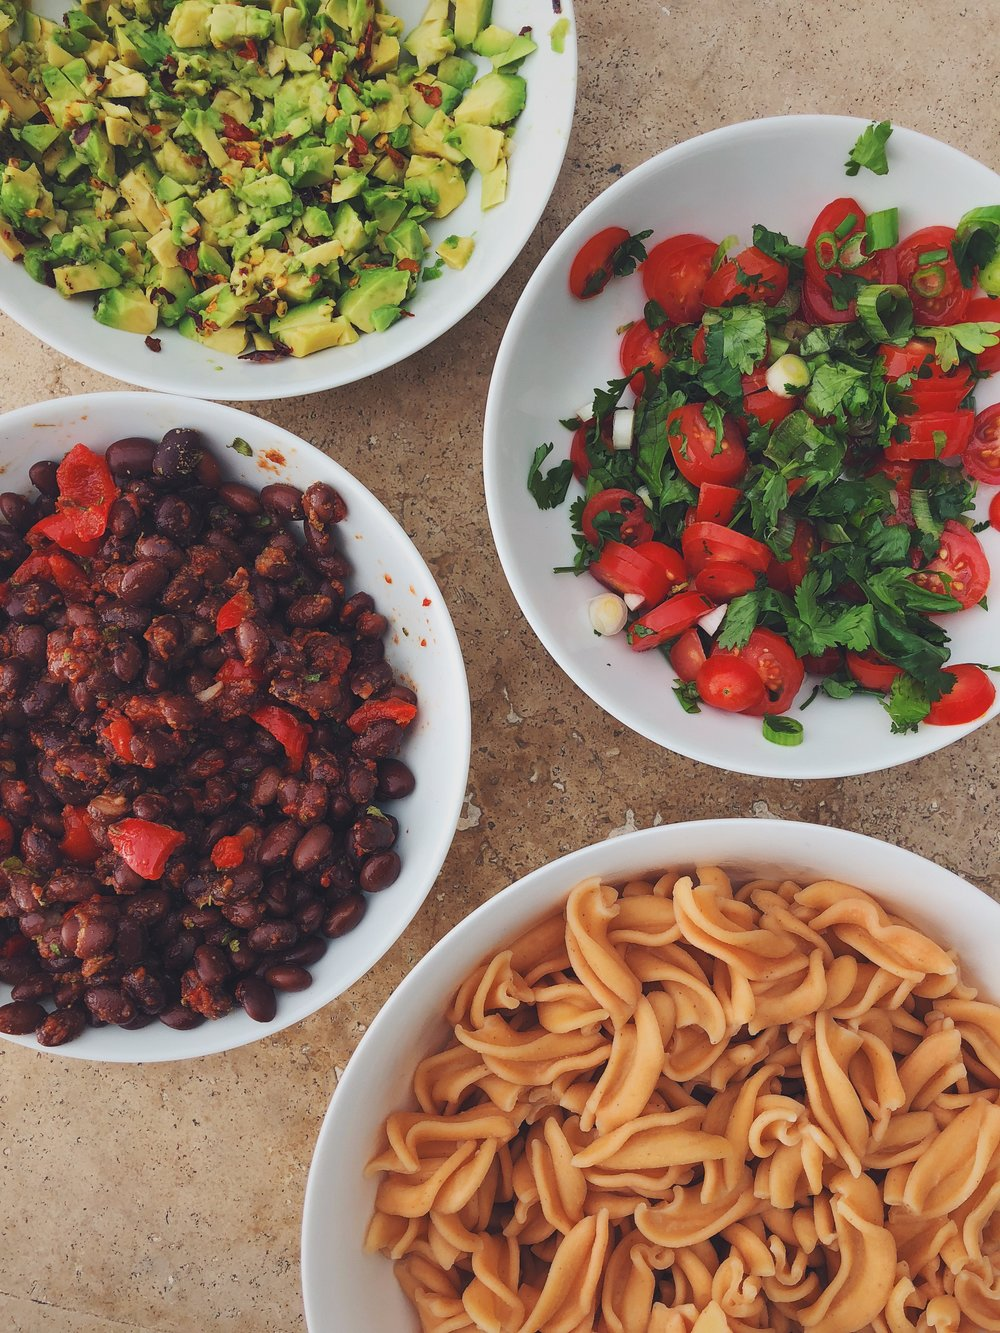 Getting ready for the big chow with plant-based, wholefood, nutritious ingredients.